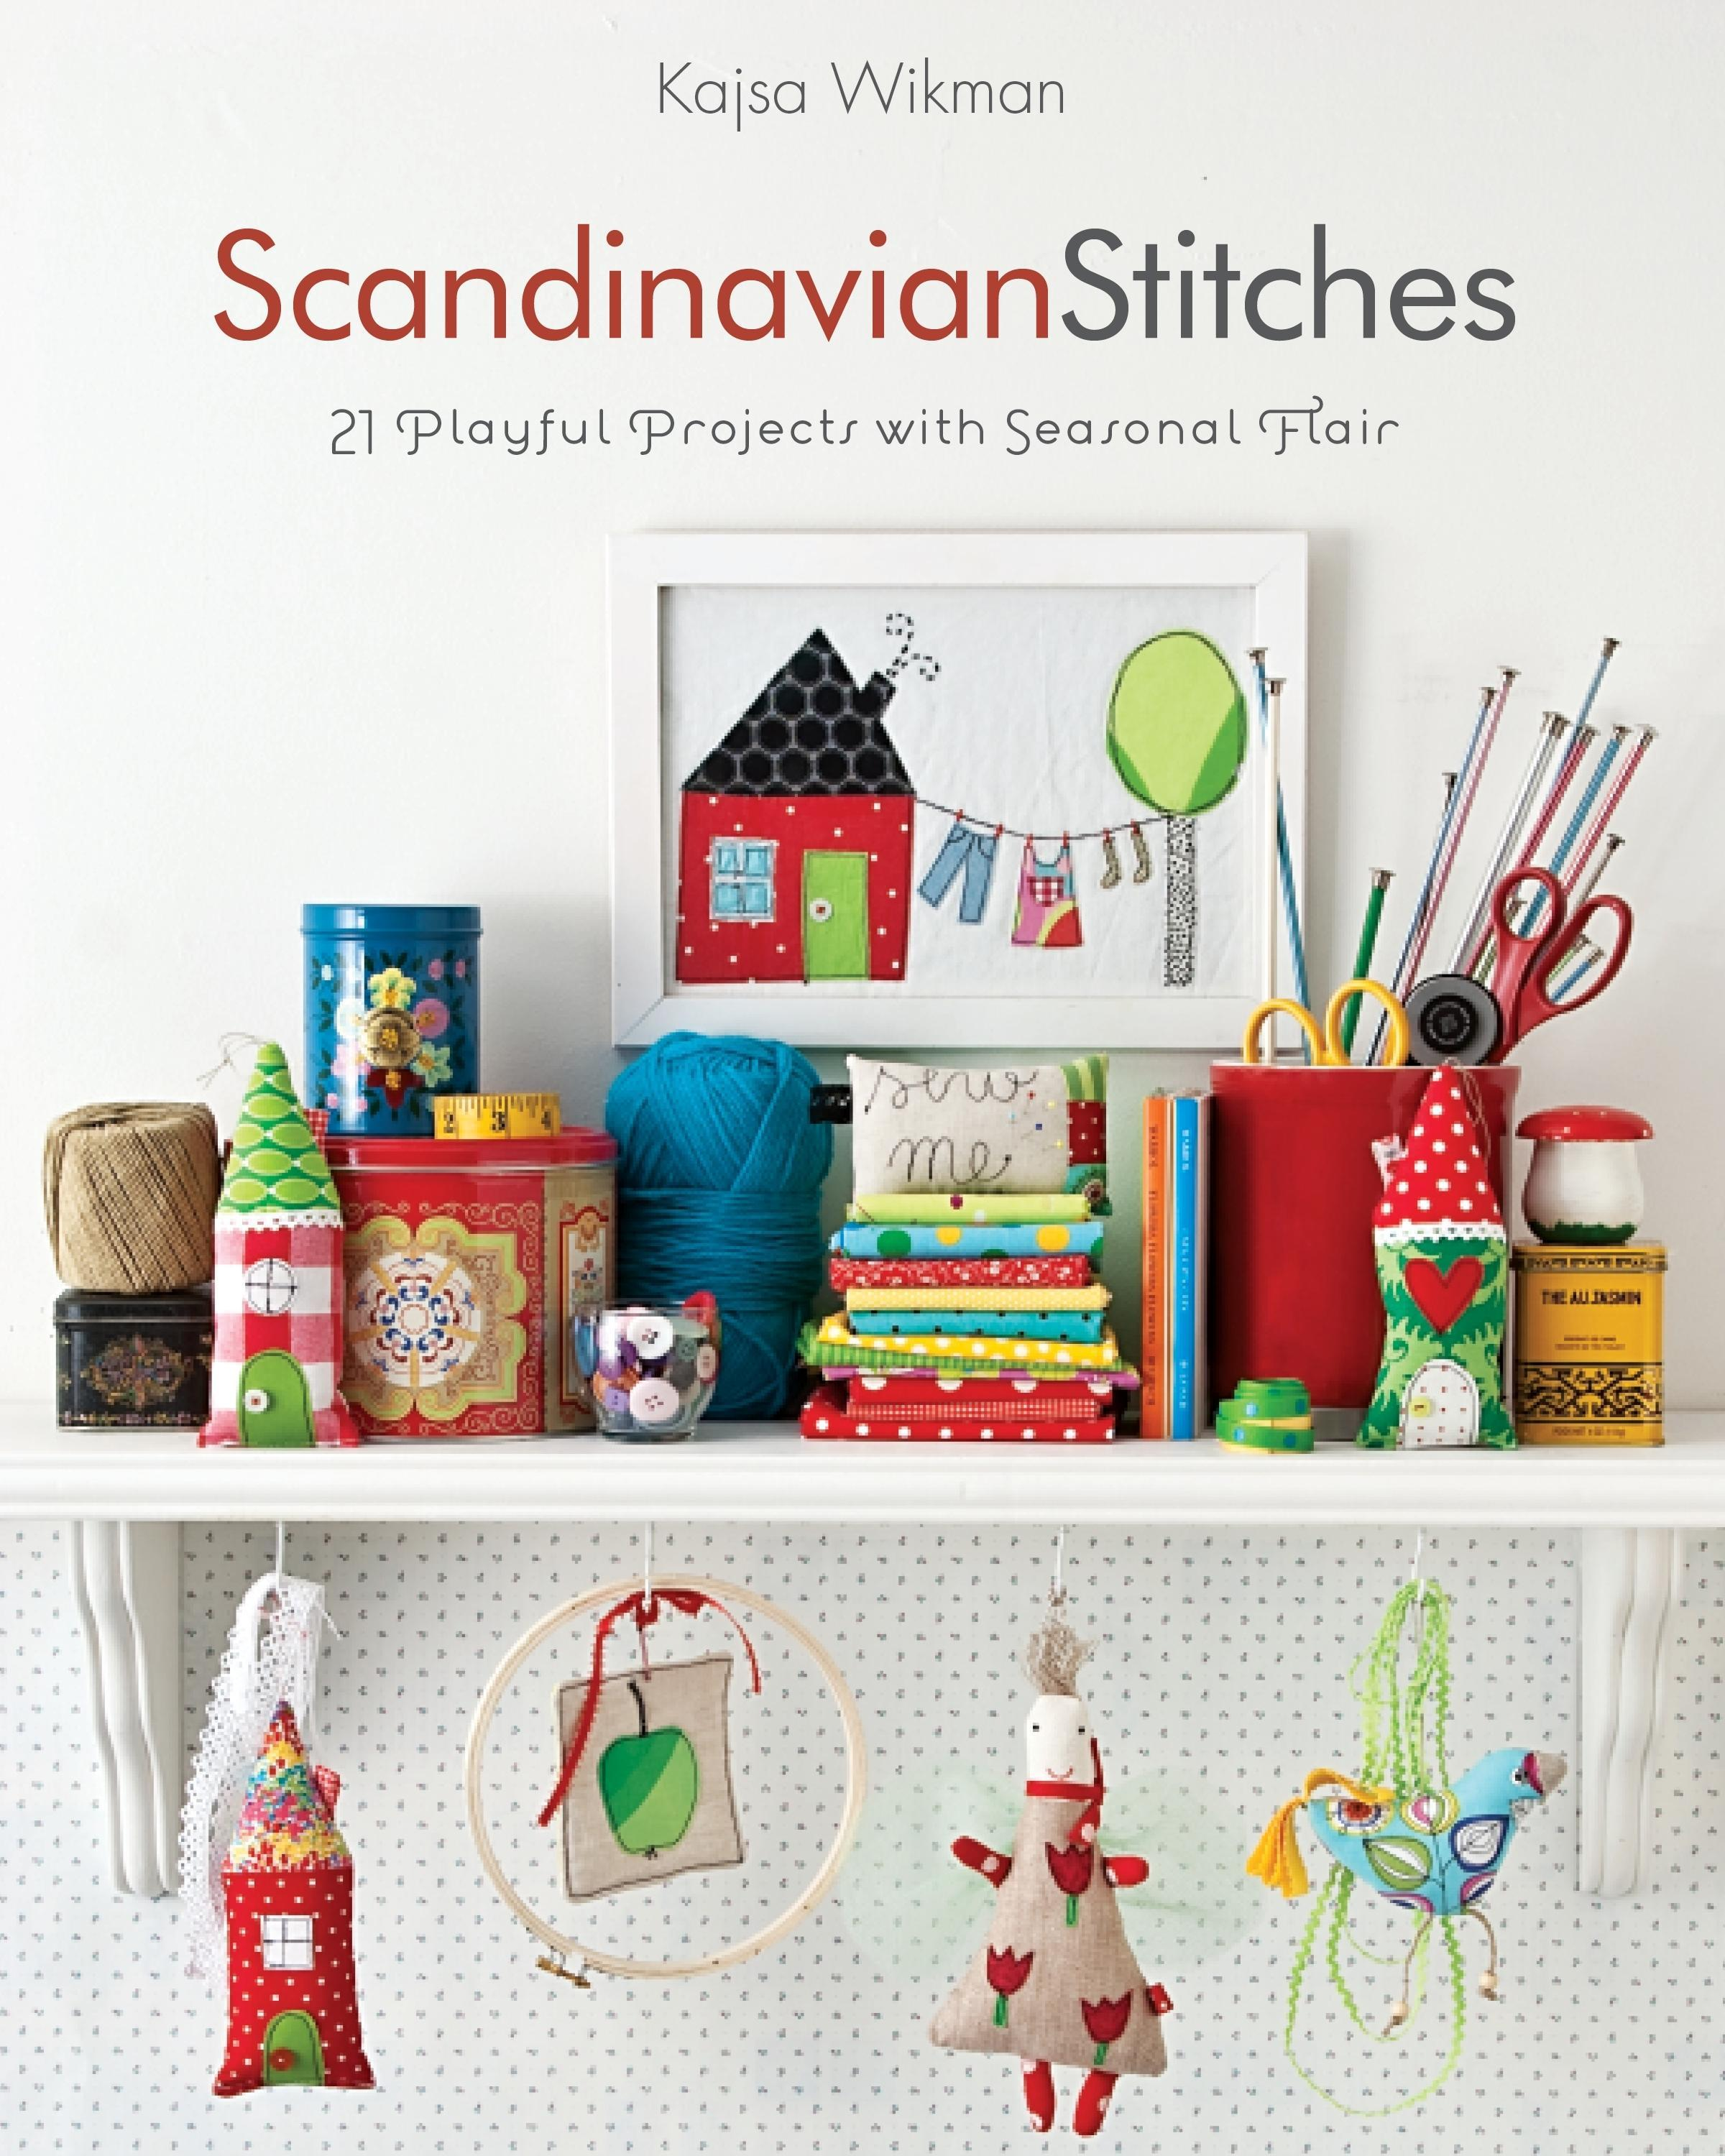 Scandinavian Stitches: 21 Playful Projects with Seasonal Flair EB2370003840070